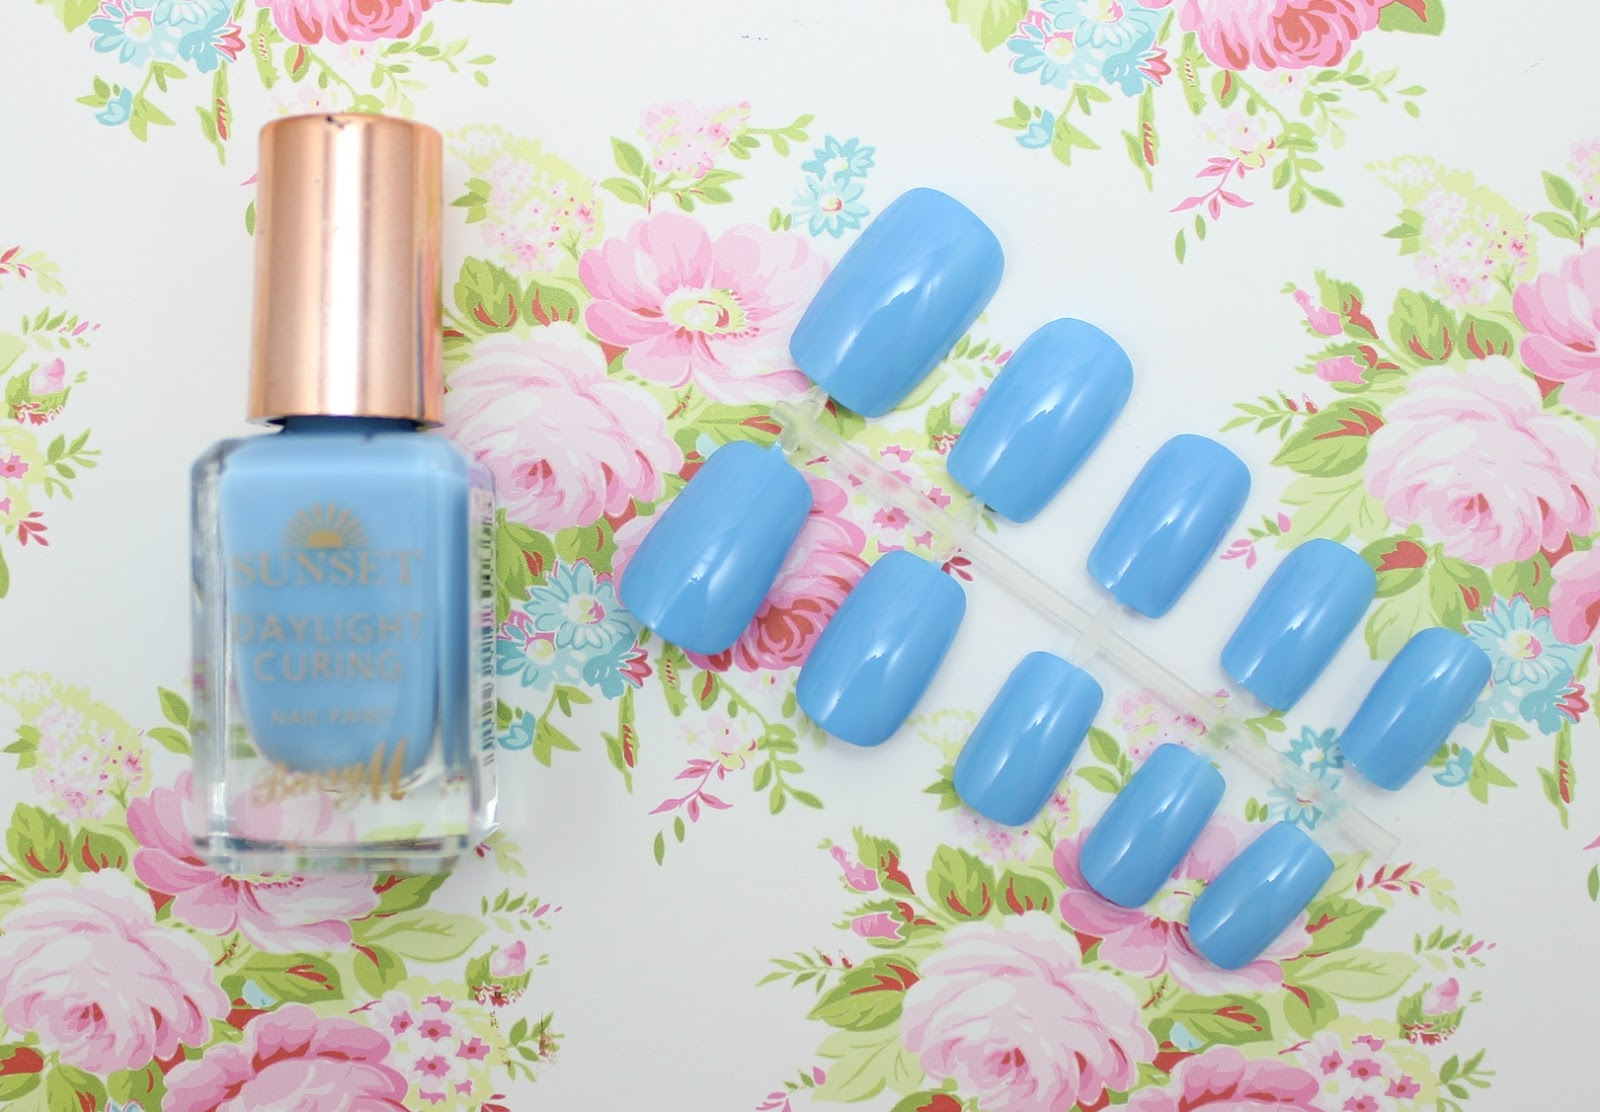 Barry M Nail Paint Bug a Blue review